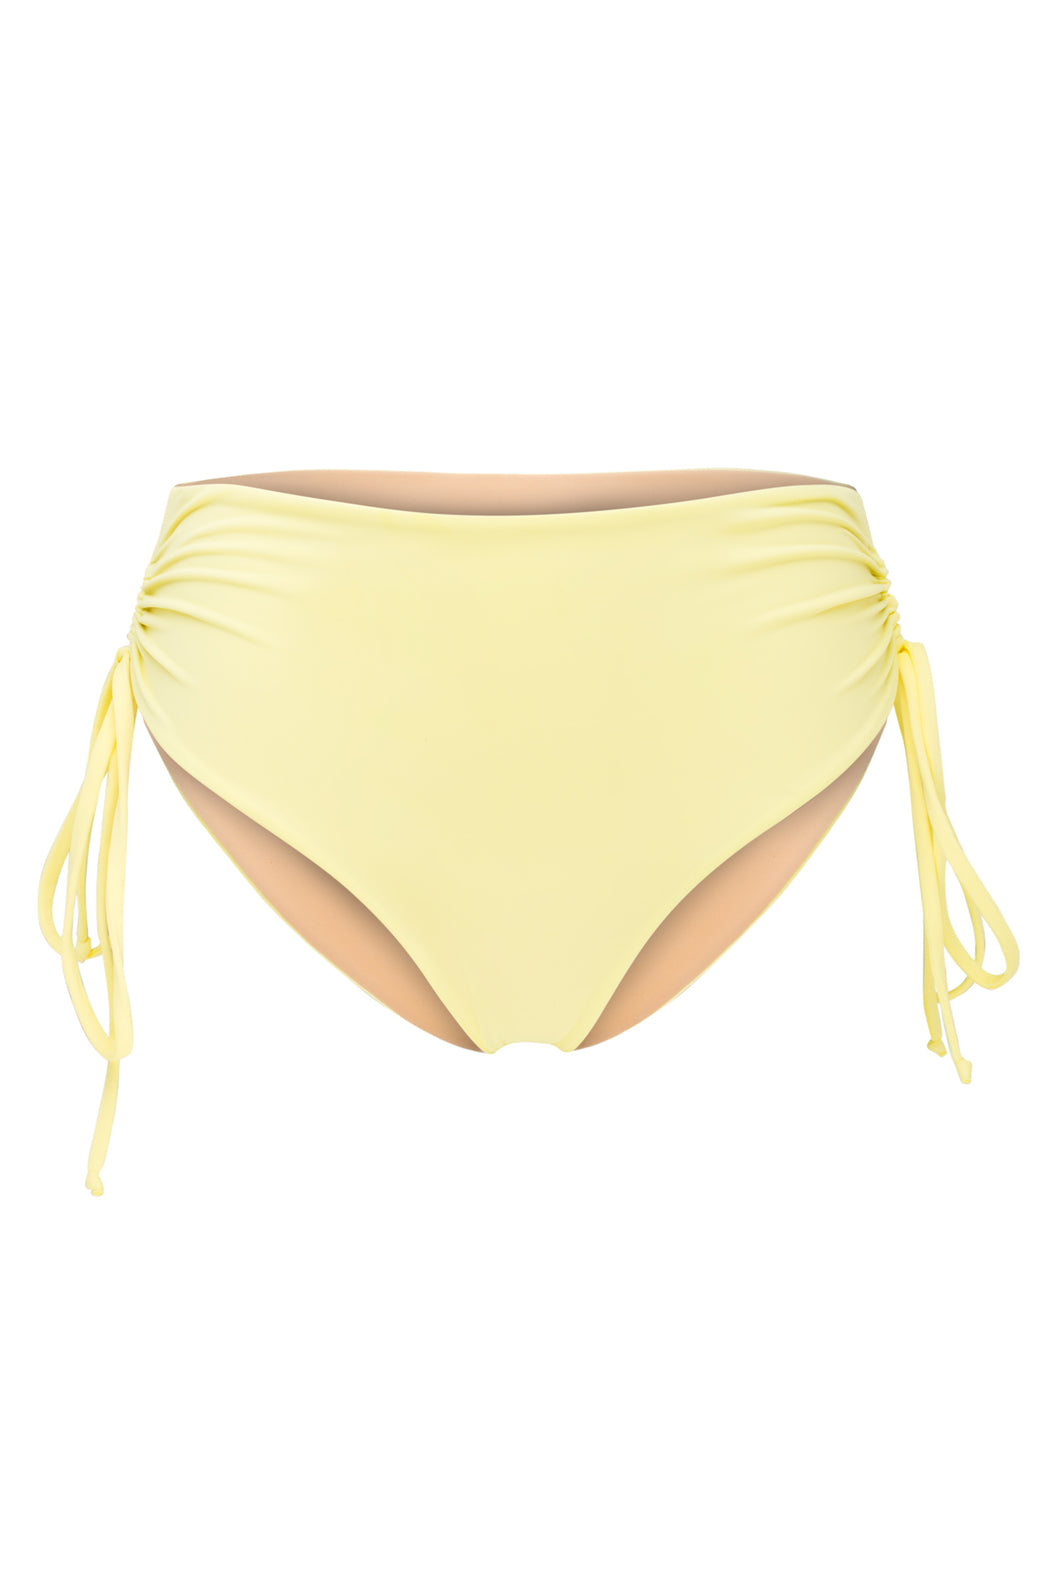 Ozero Swimwear Vida Bikini Bottom in Lemon color, with ruched details at the sides, designed in Kuala Lumpur.